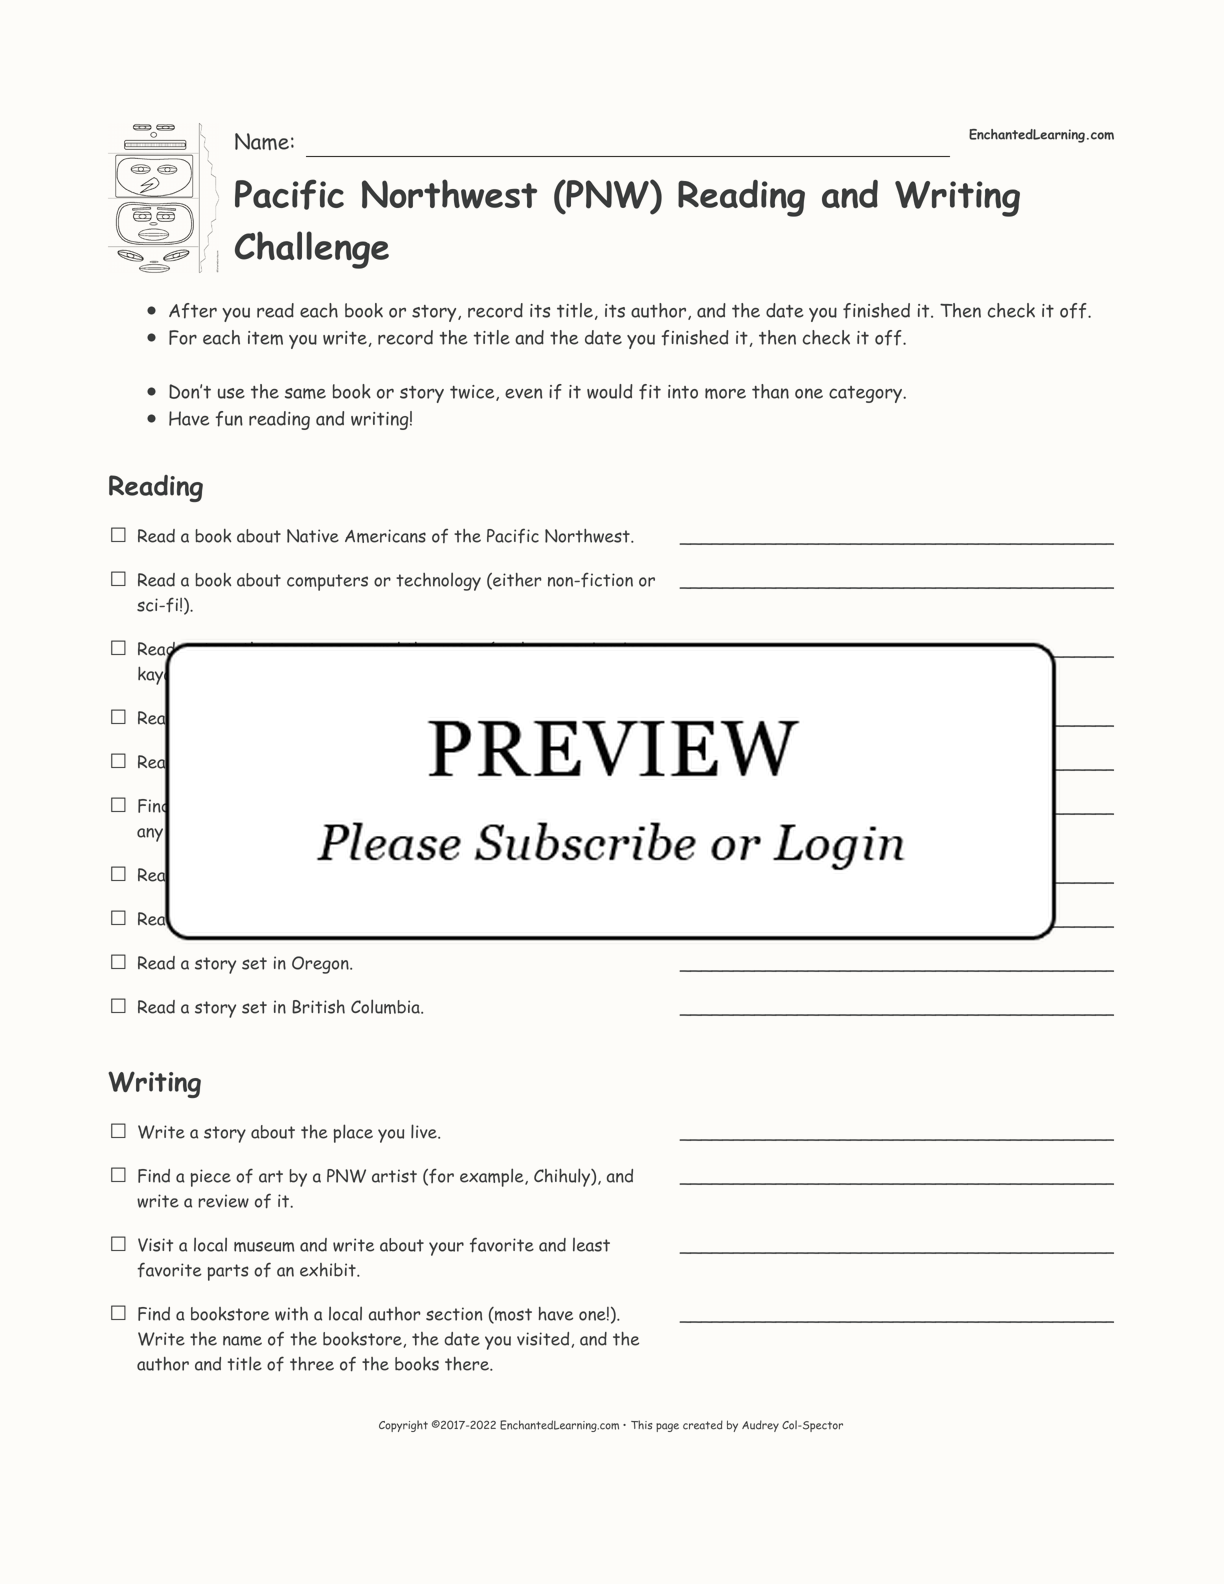 Pacific Northwest (PNW) Reading and Writing Challenge interactive printout page 1